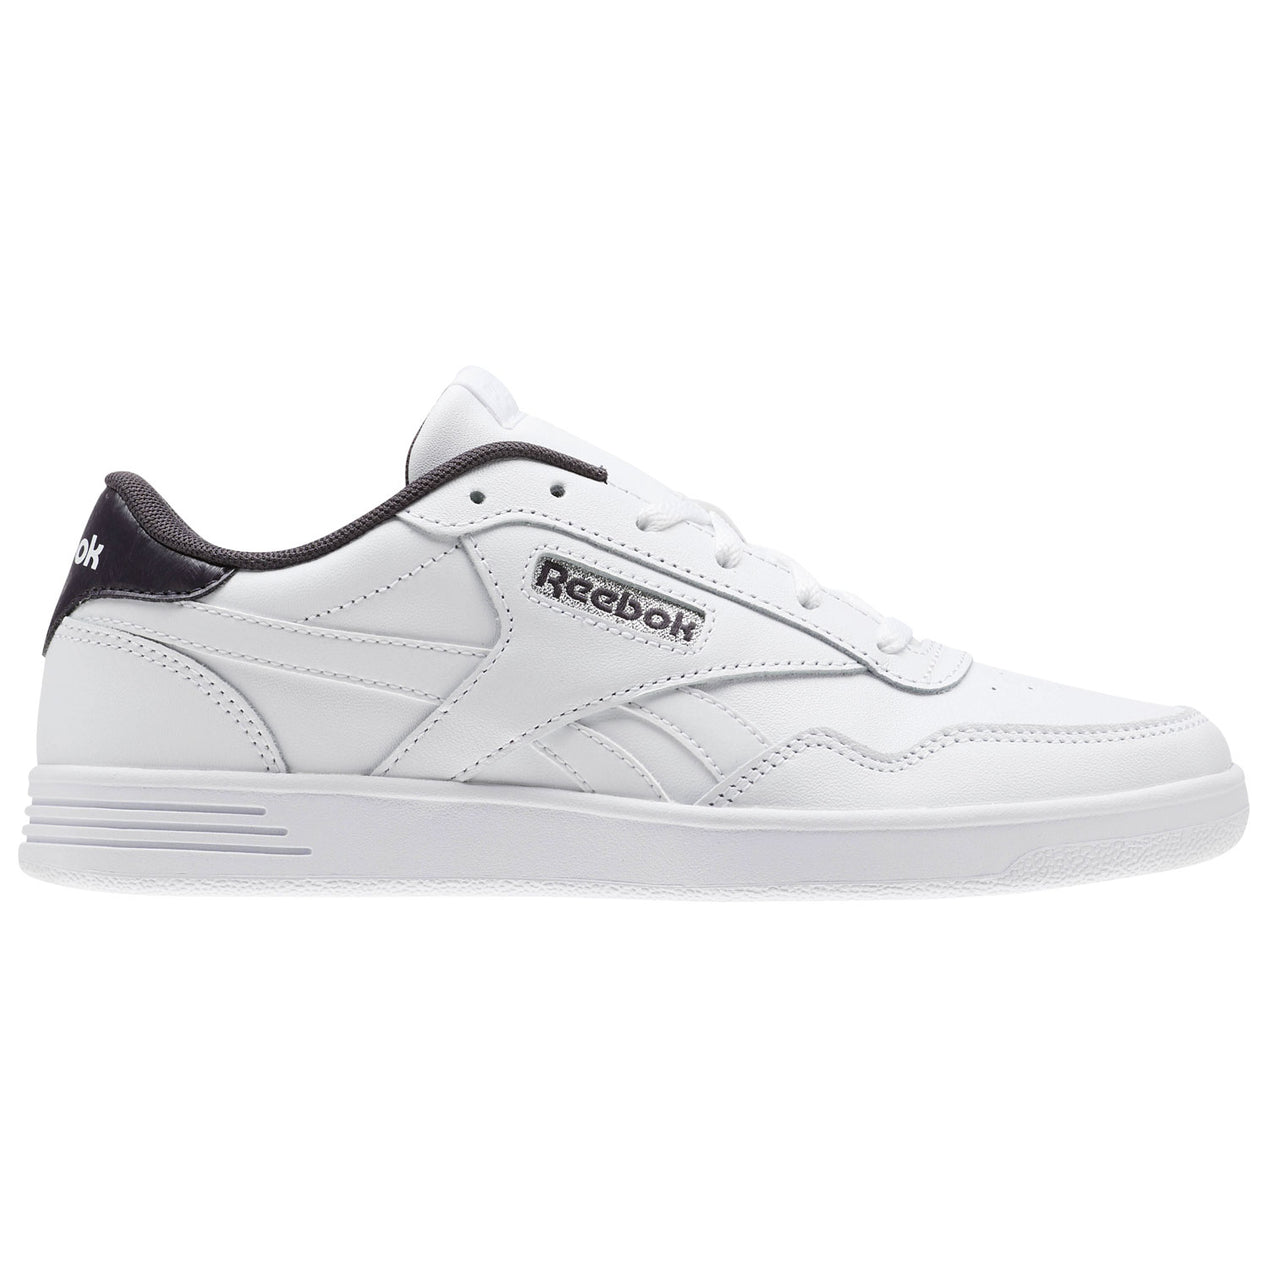 b9bb90a7e945 Reebok Royal Techque T Lx Shoes - Women s